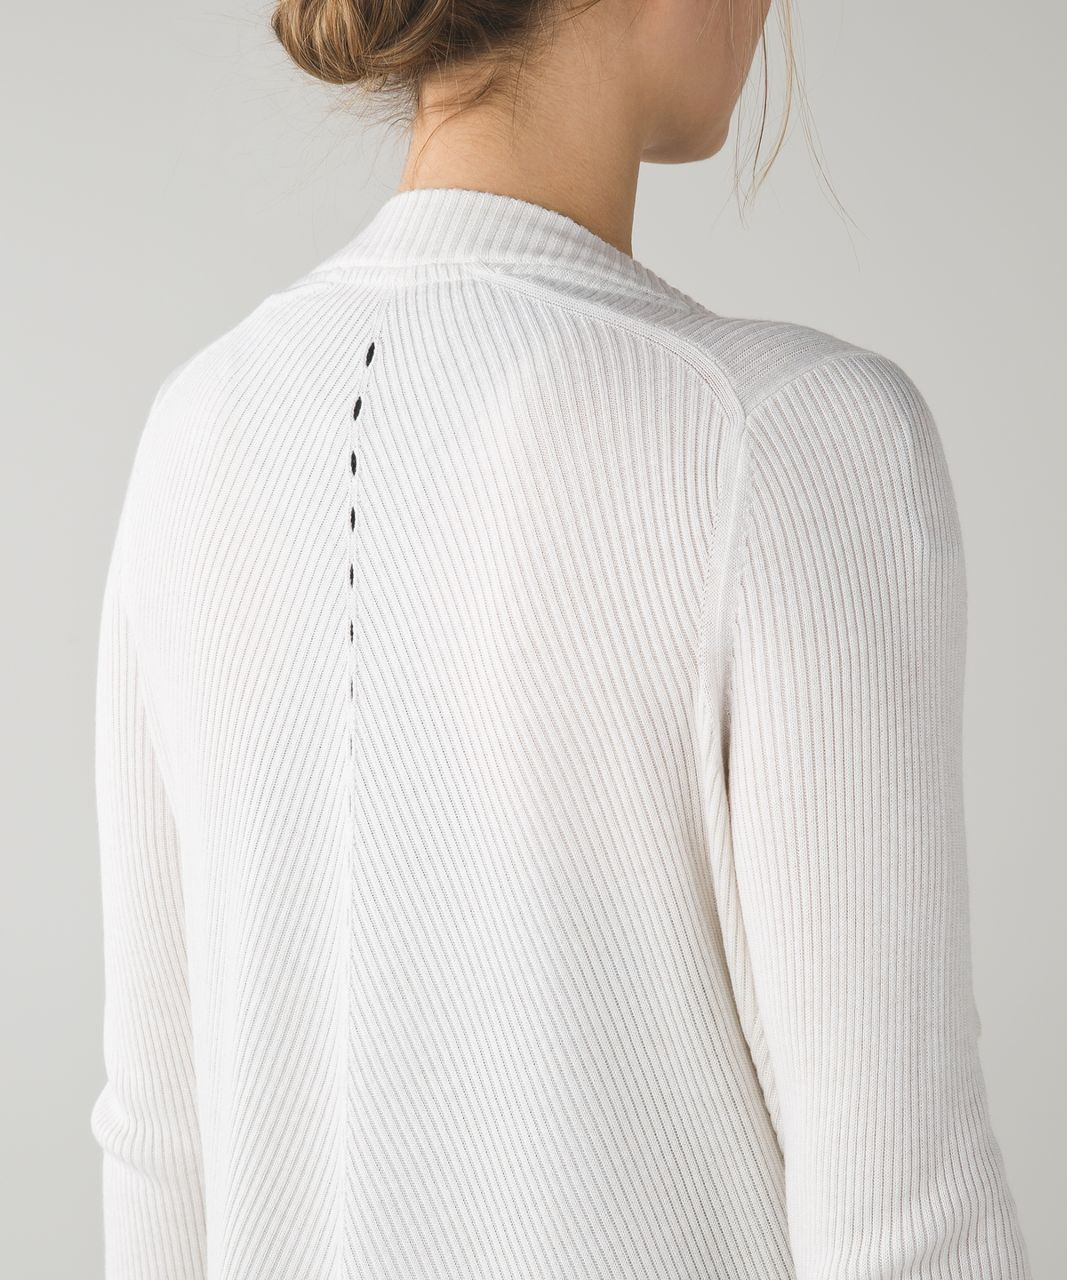 Lululemon Resolution Wrap - Heathered White